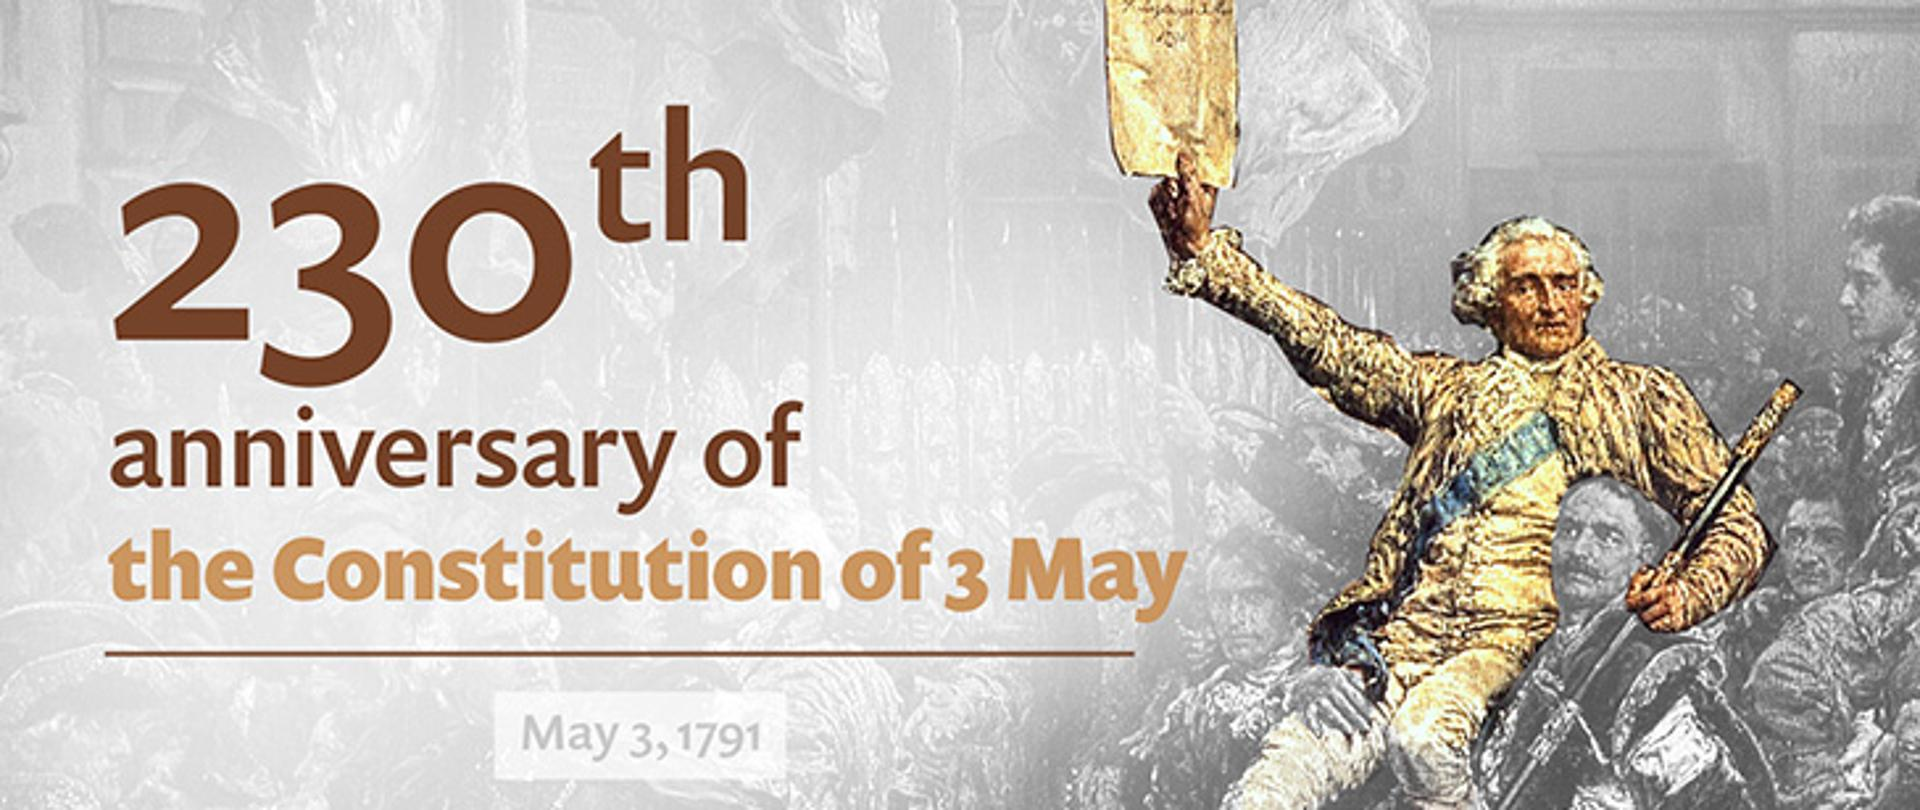 230th_anniversary_of_the_Constitution_of_3_May